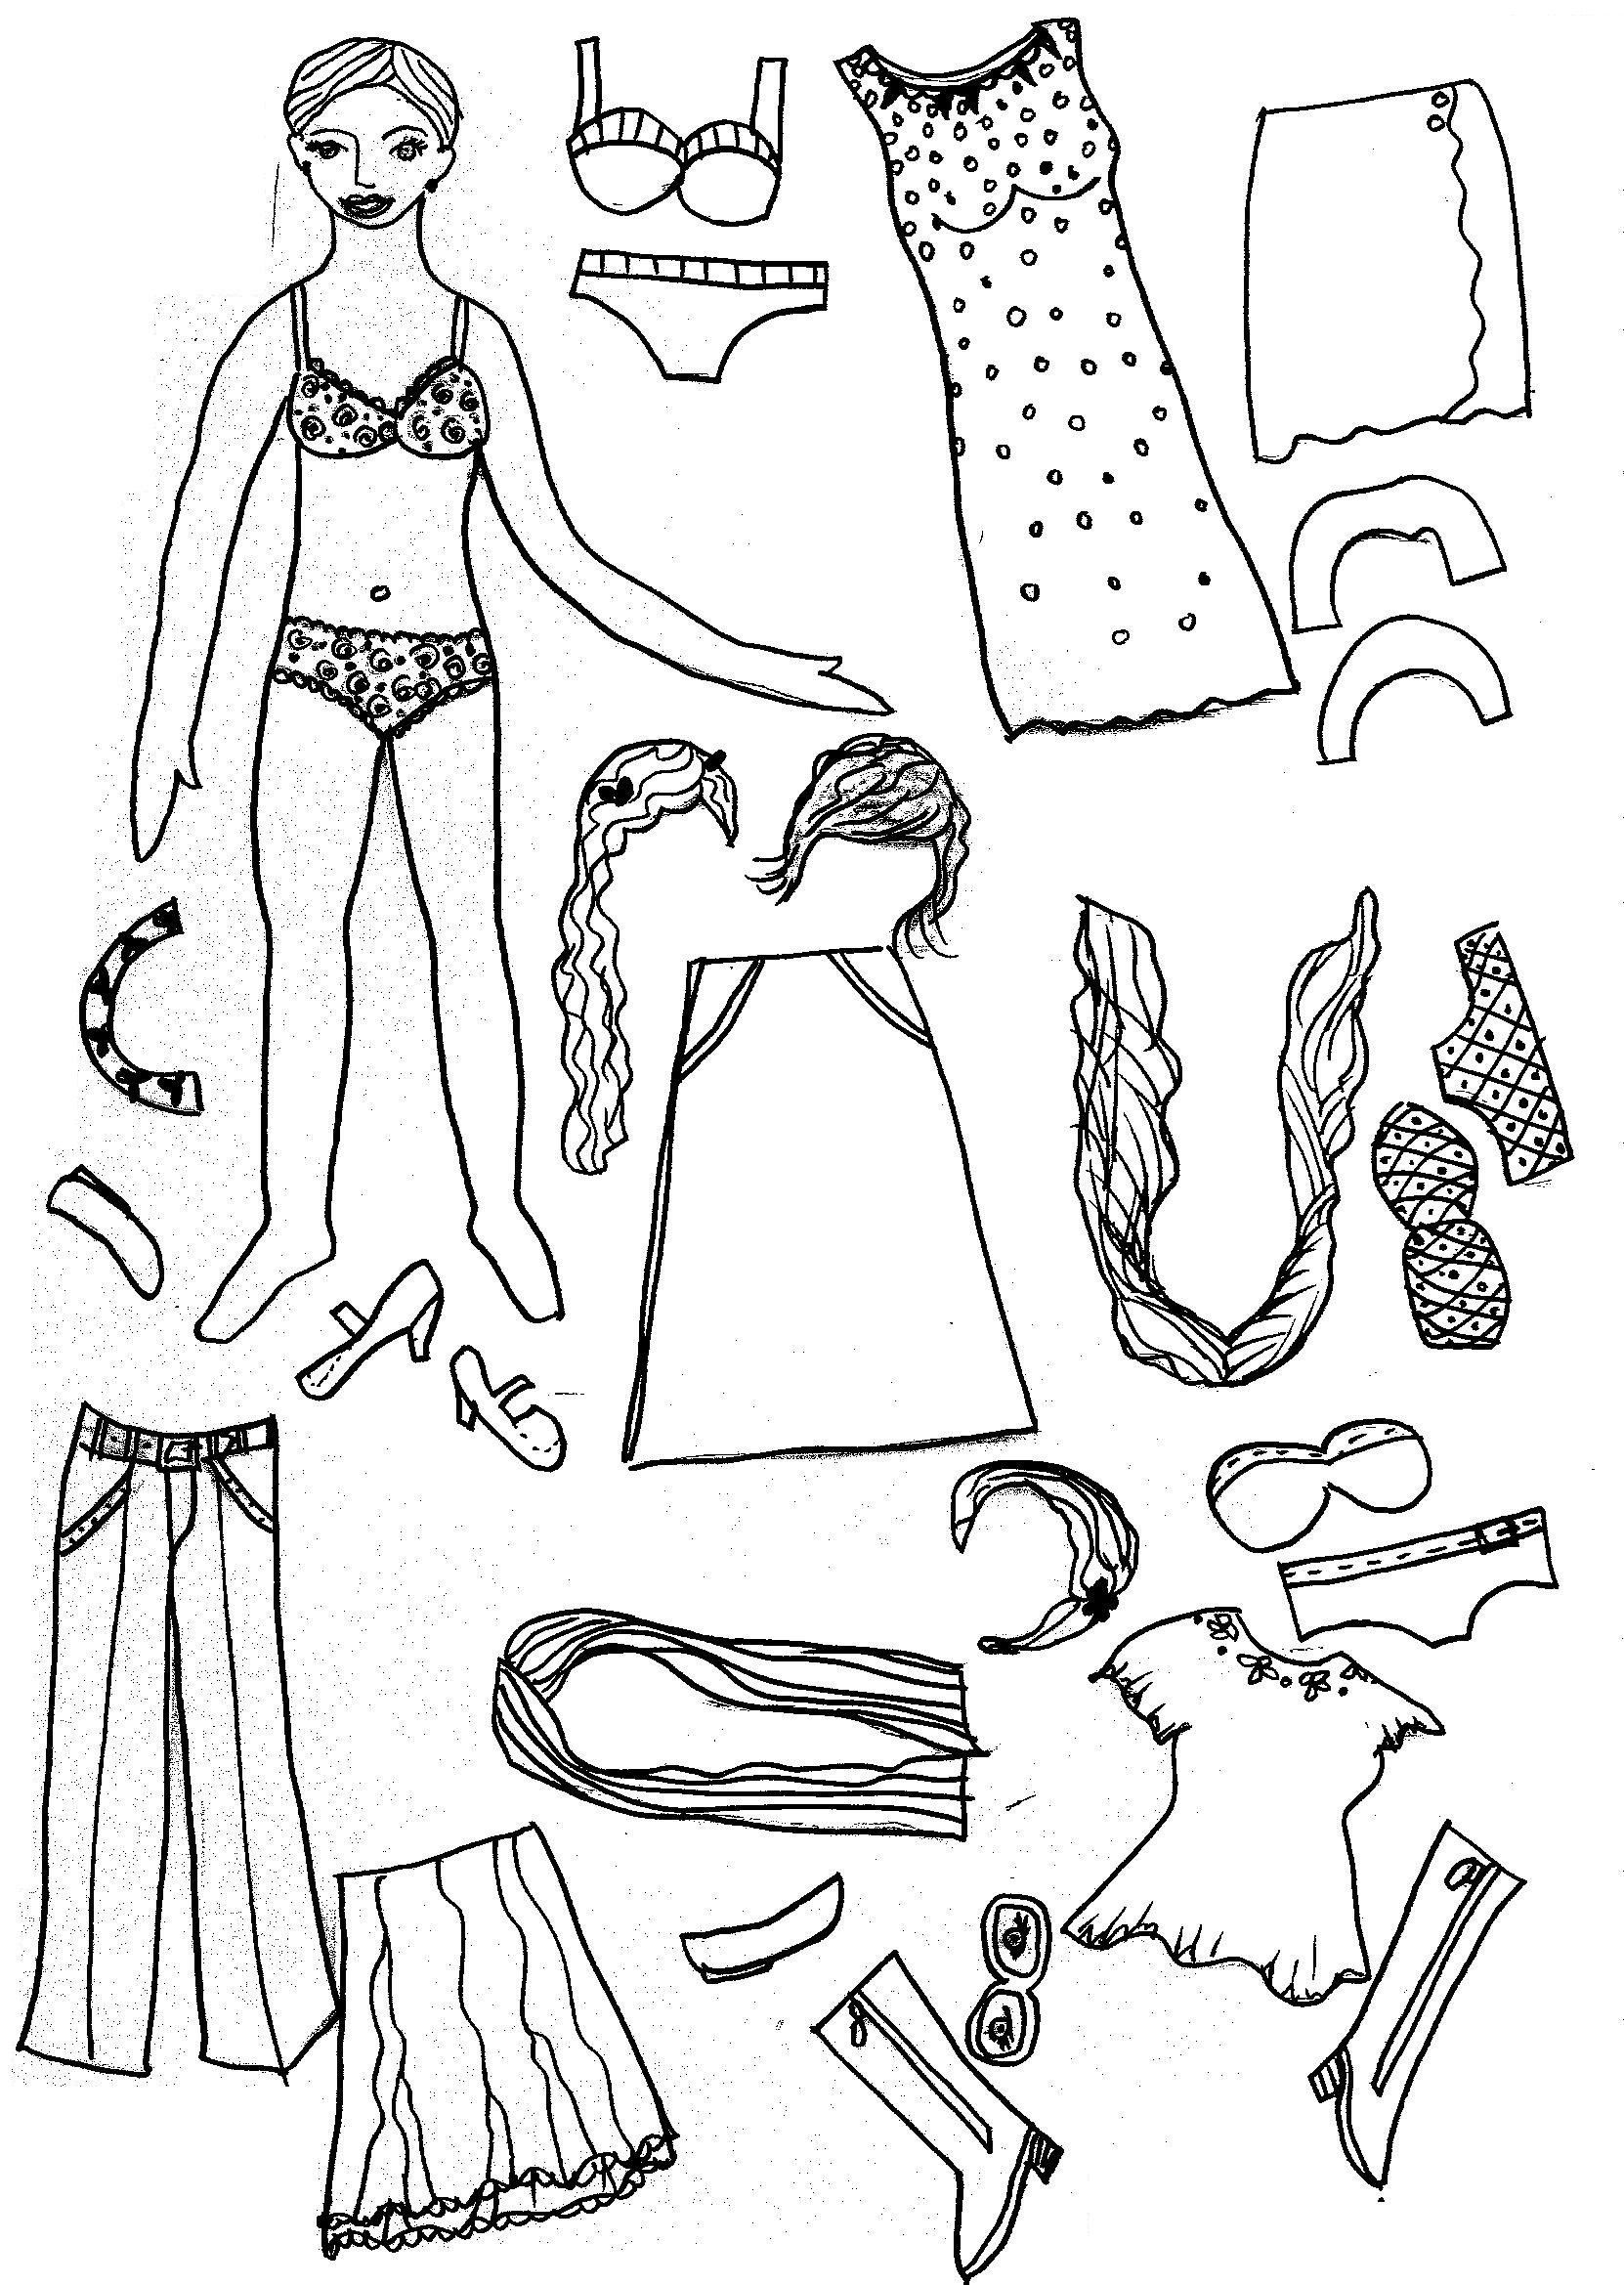 Free Printable Paper Doll Coloring Pages For Kids Pertaining To - Free Printable Paper Doll Coloring Pages